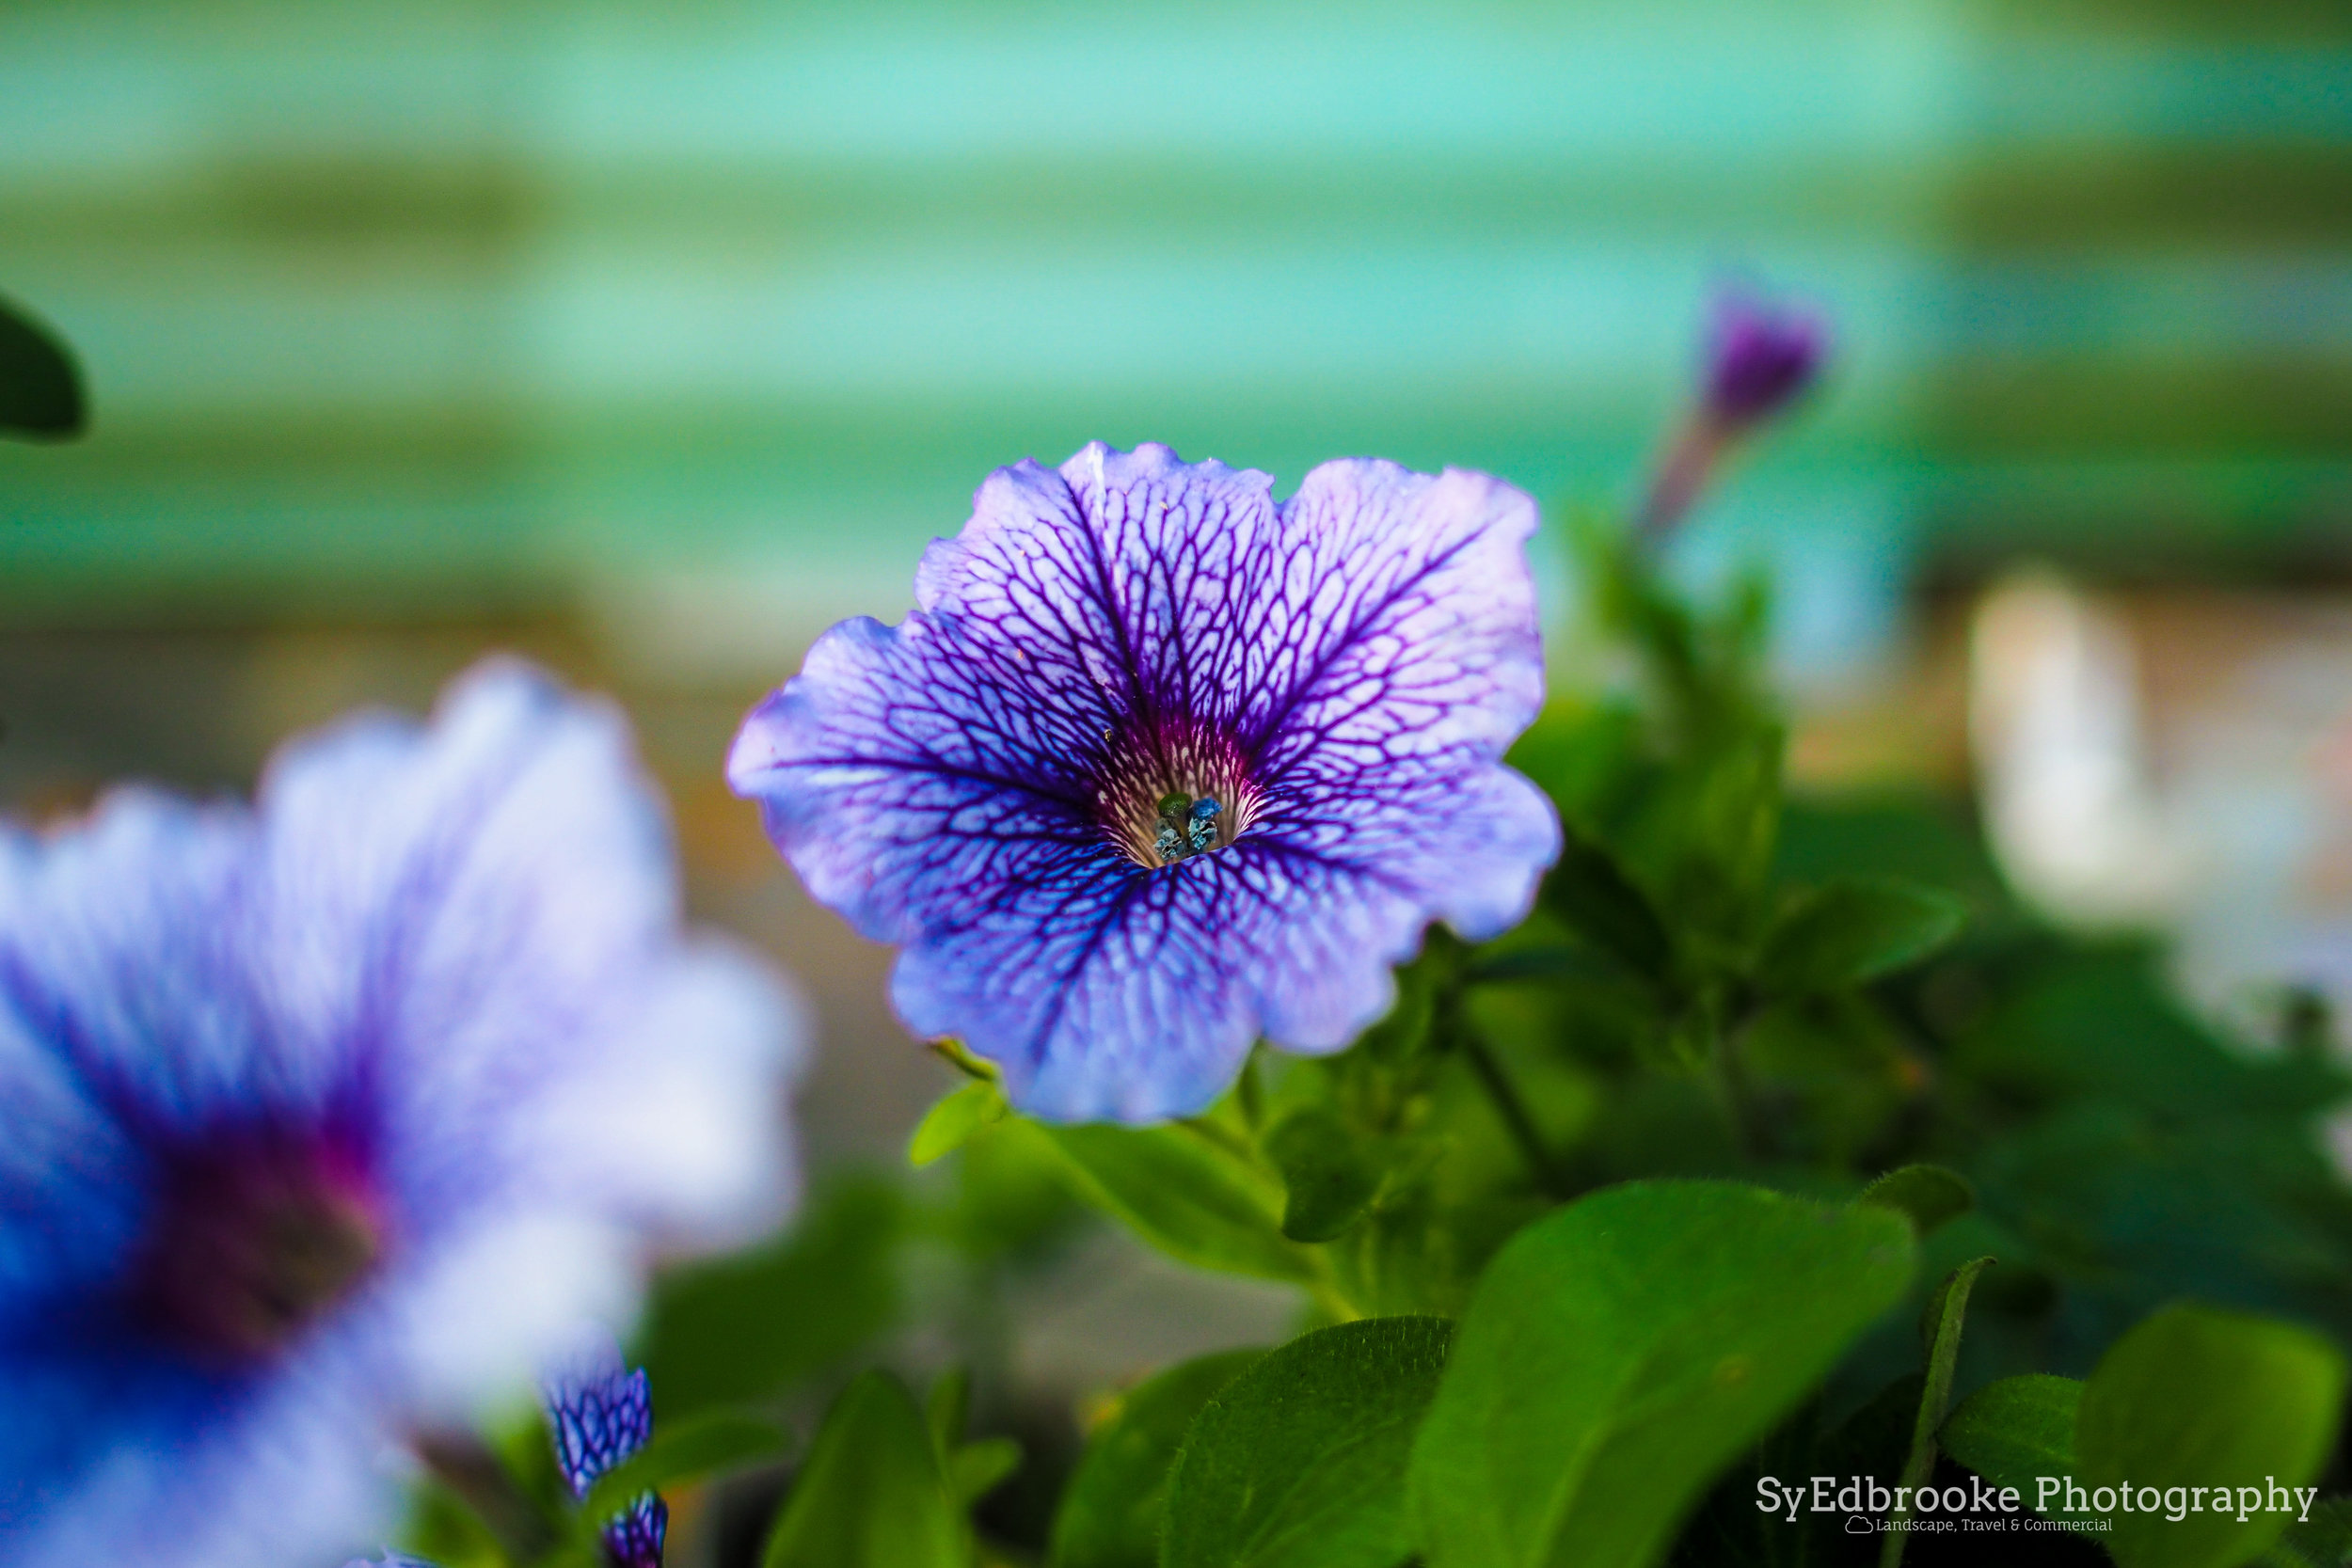 flowers on the way. f1.8, ISO 200, 1/200, 35mm